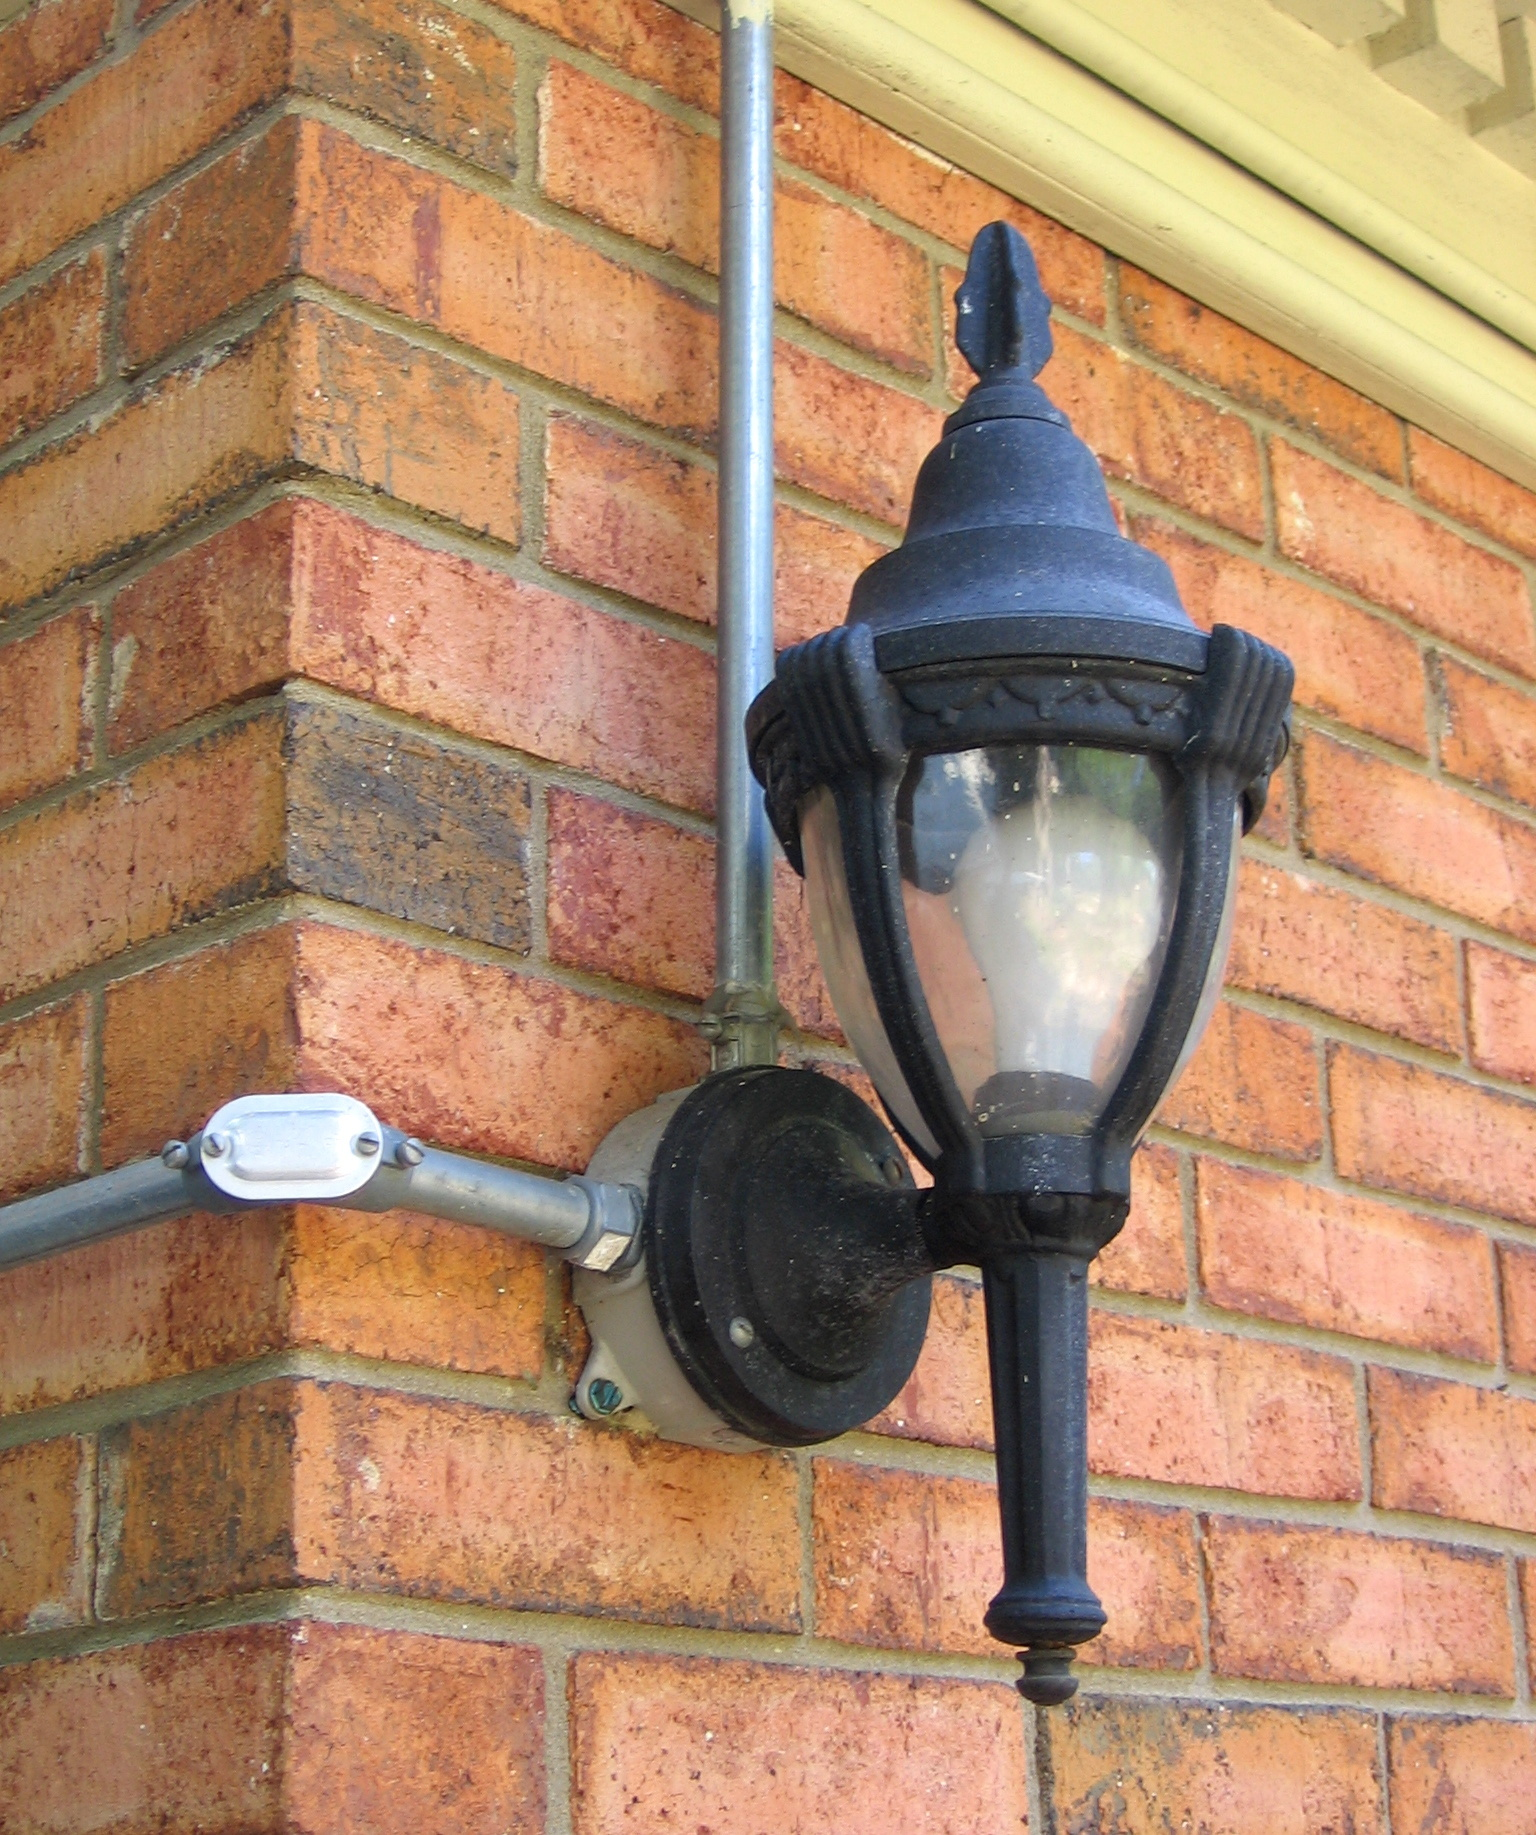 Dulley column color graphics photo when installing outdoor securityentertainment lighting always follow local electric codes this installation uses rigid steel conduit arubaitofo Gallery